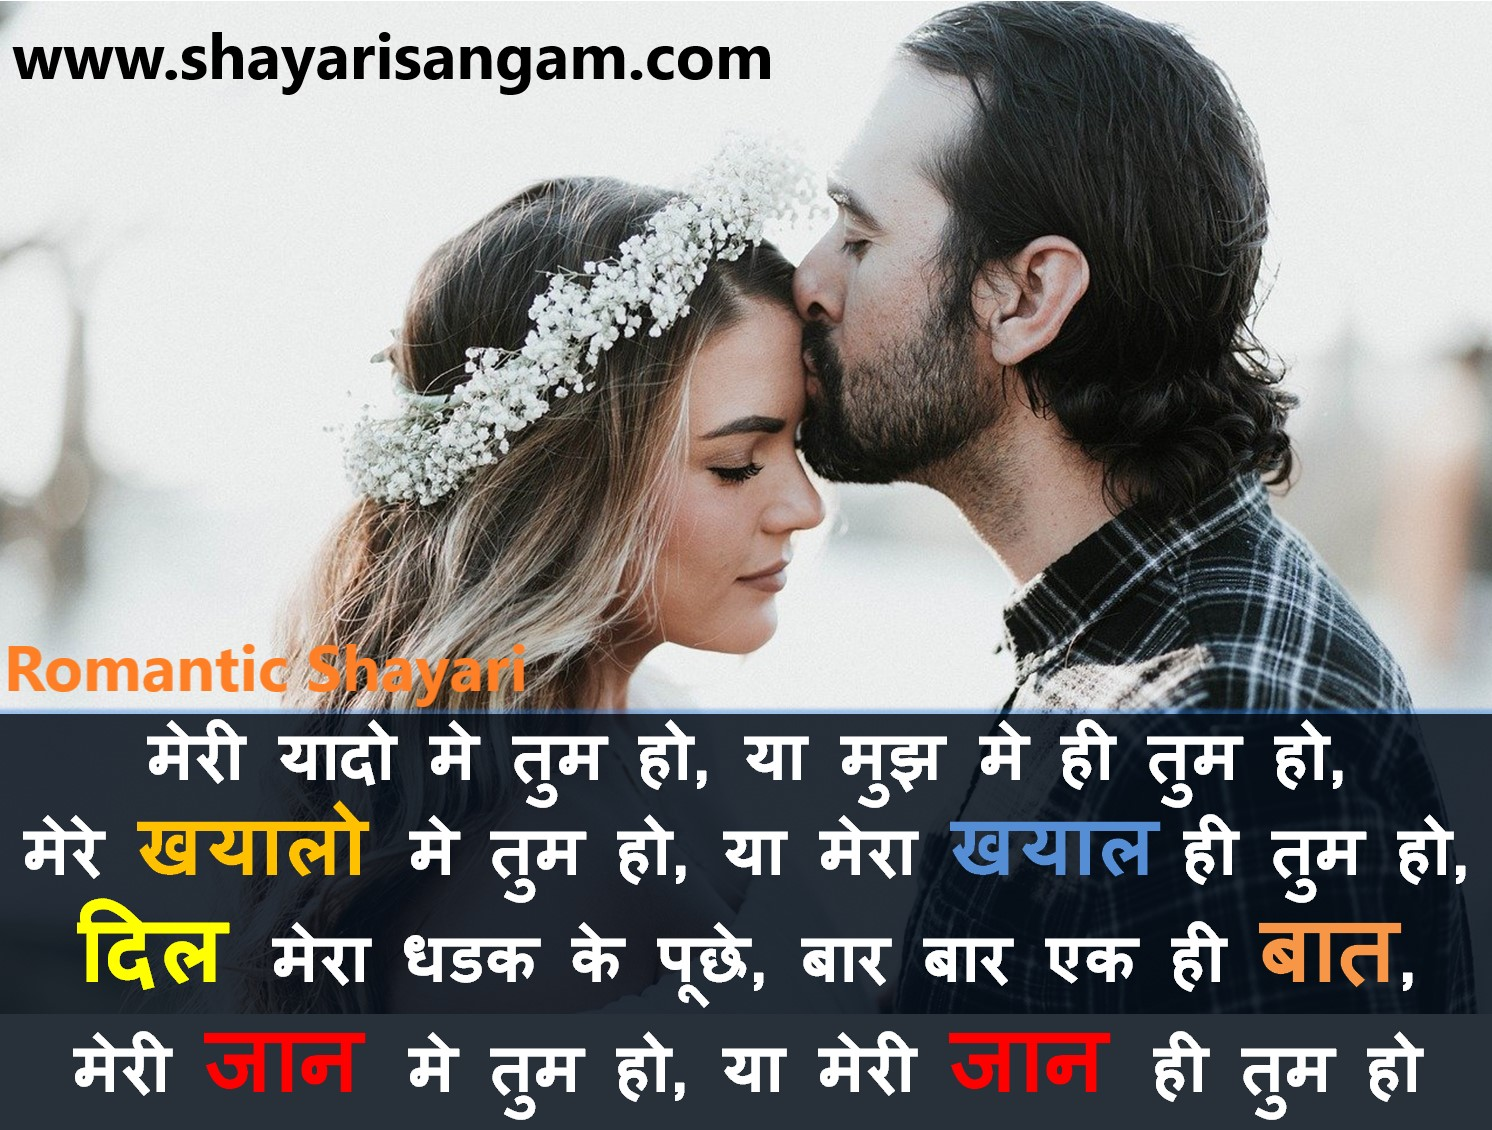 Romantic Shayari,Romantic Shayari